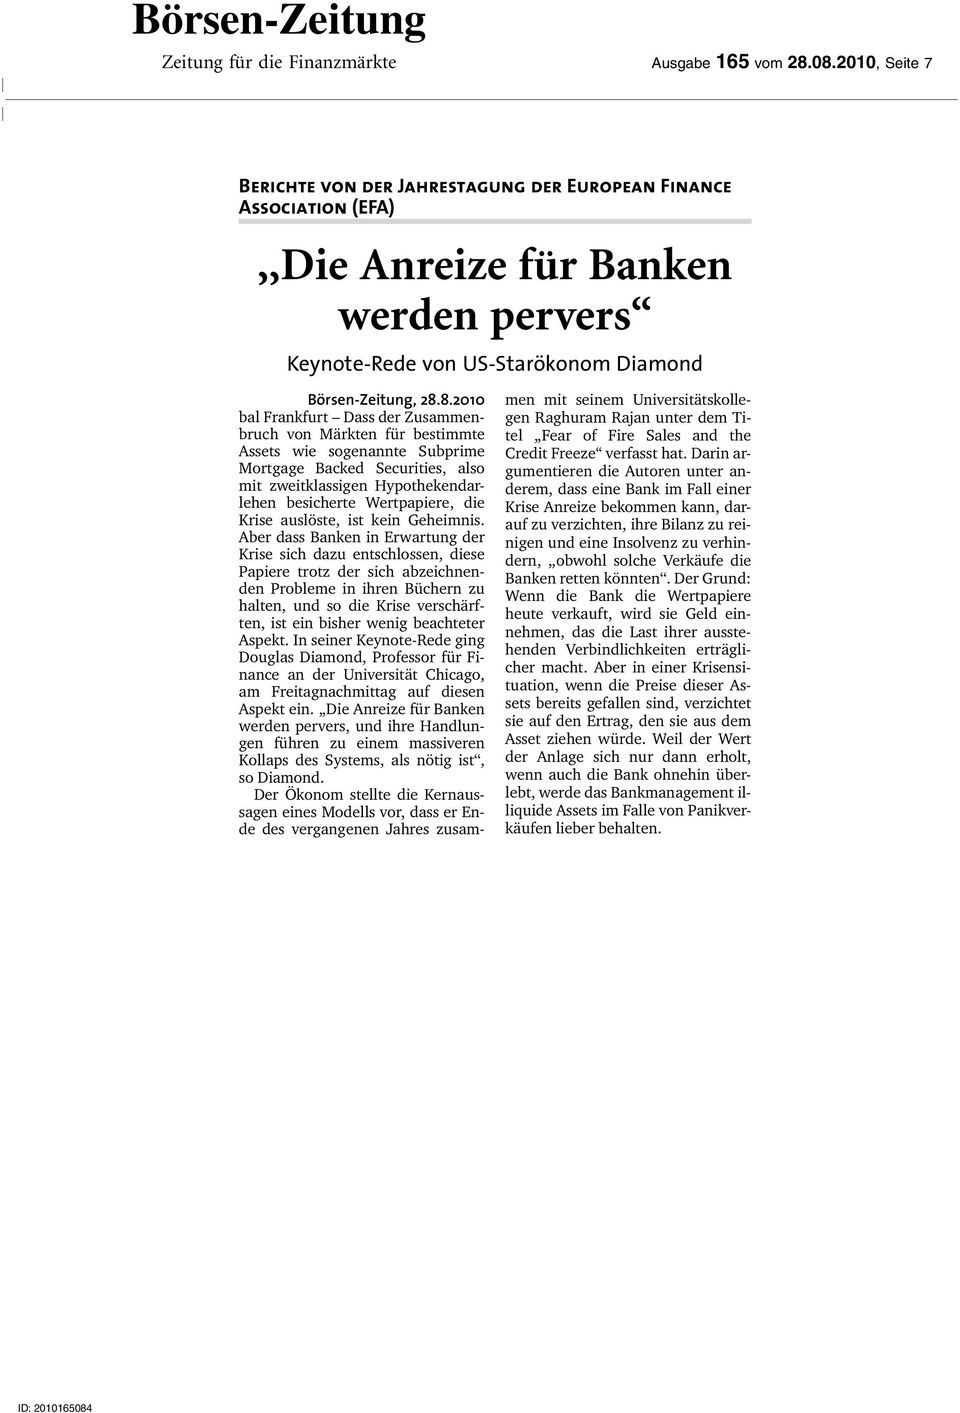 8.2010 bal Frankfurt Dass der Zusammenbruch von Märkten fˇr bestimmte Assets wie sogenannte Subprime Mortgage Backed Securities, also mit zweitklassigen Hypothekendarlehen besicherte Wertpapiere, die